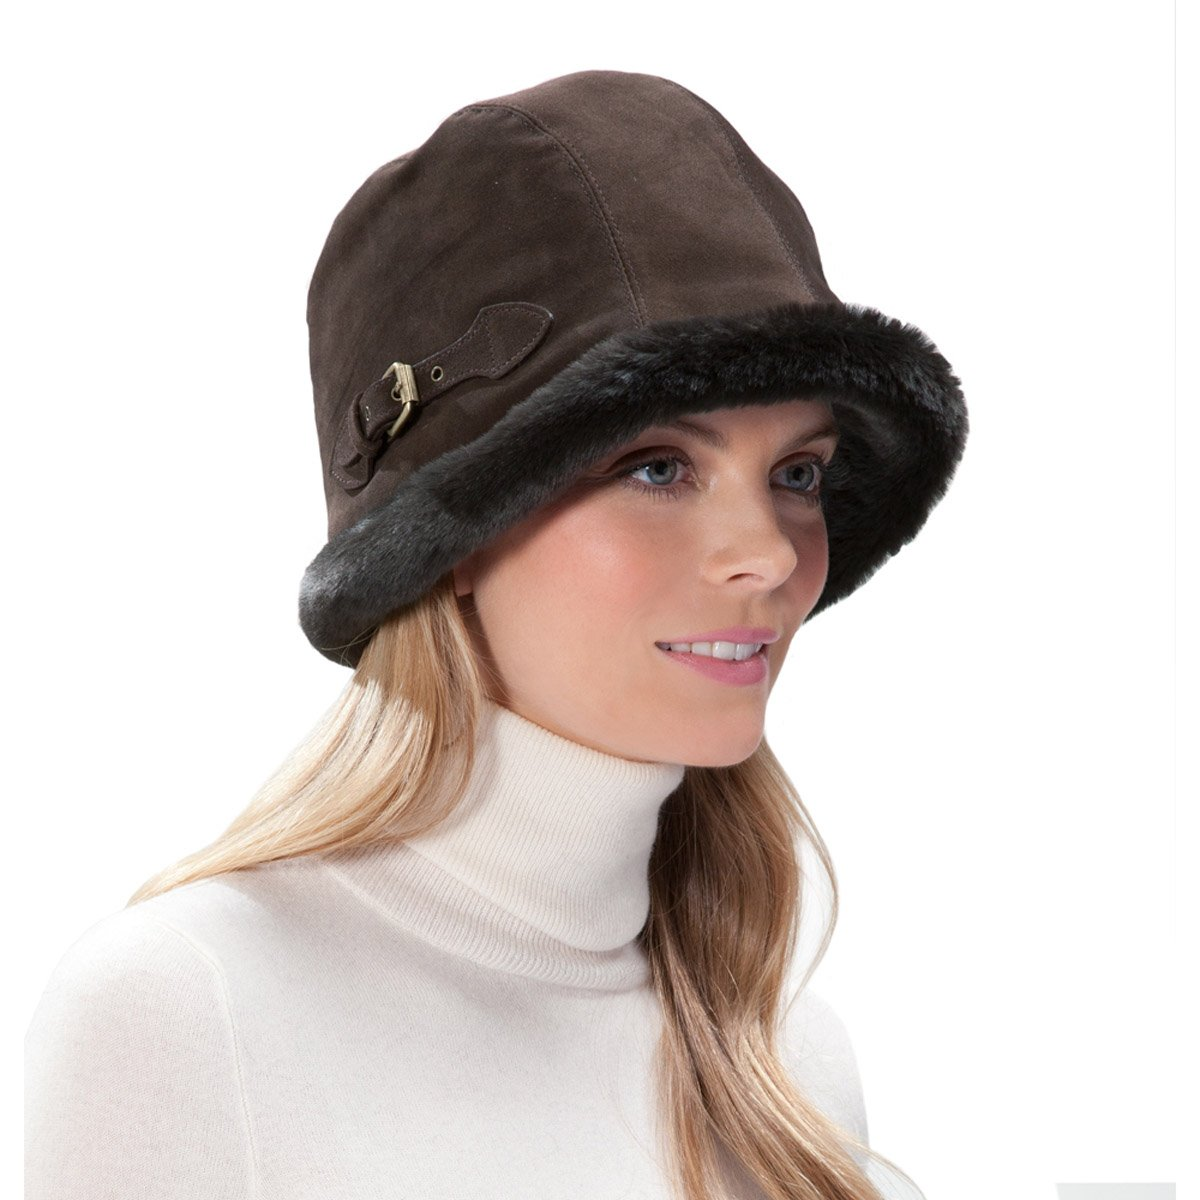 Eric Javits Luxury Fashion Designer Women's Headwear Hat - Vail - Brown by Eric Javits